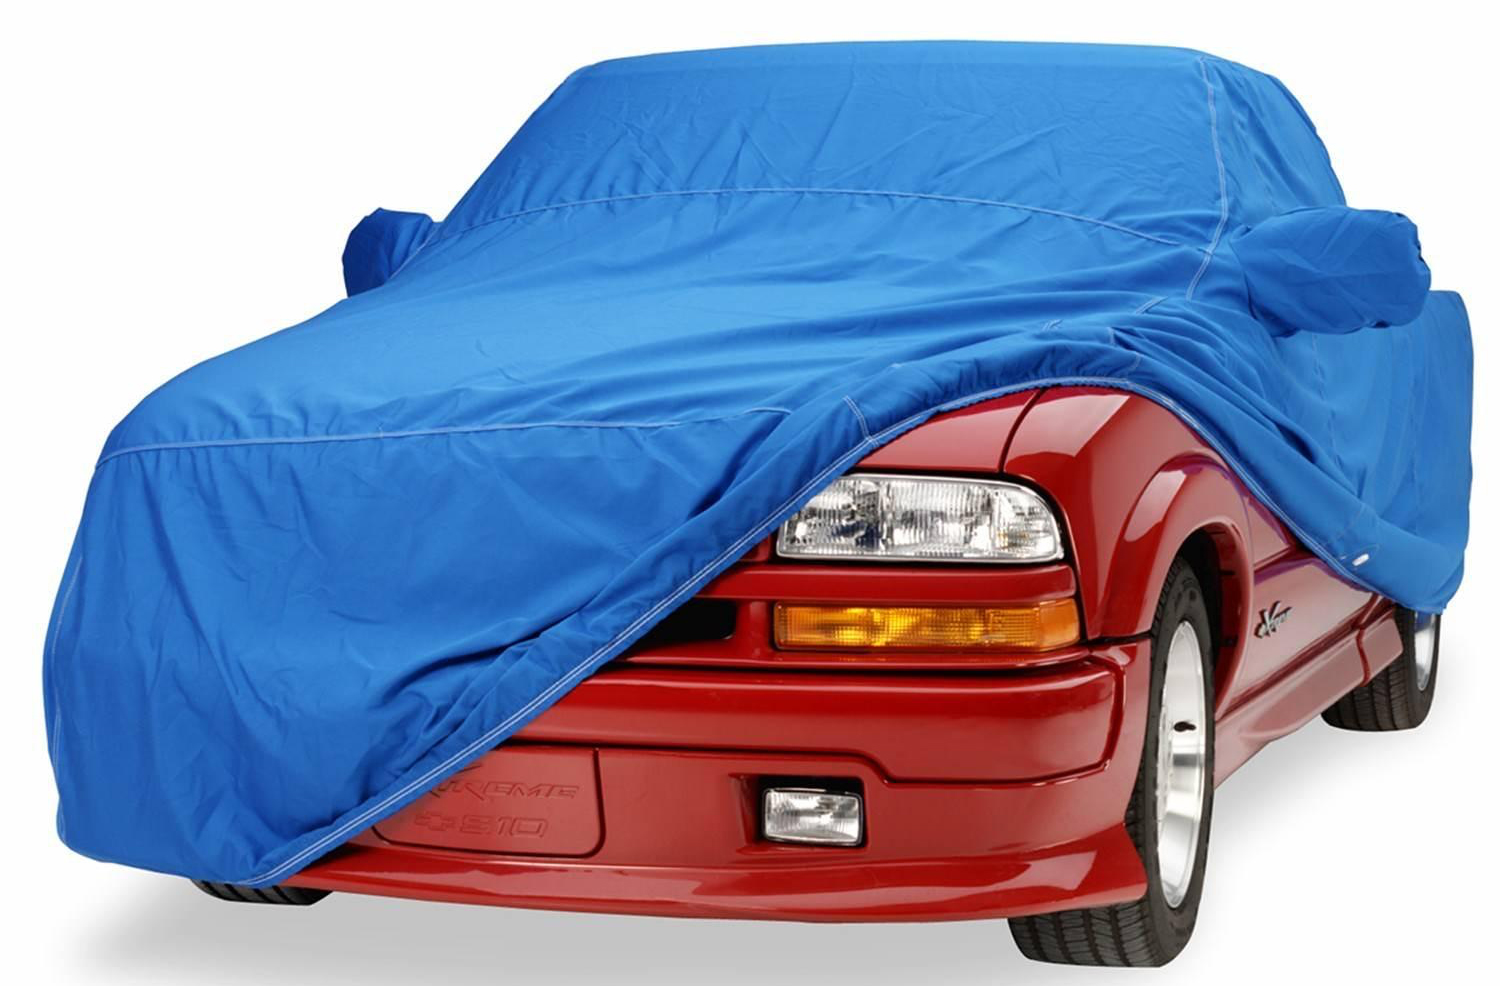 covercraft sunbrella car covers sunbrella car cover On cover craft car covers